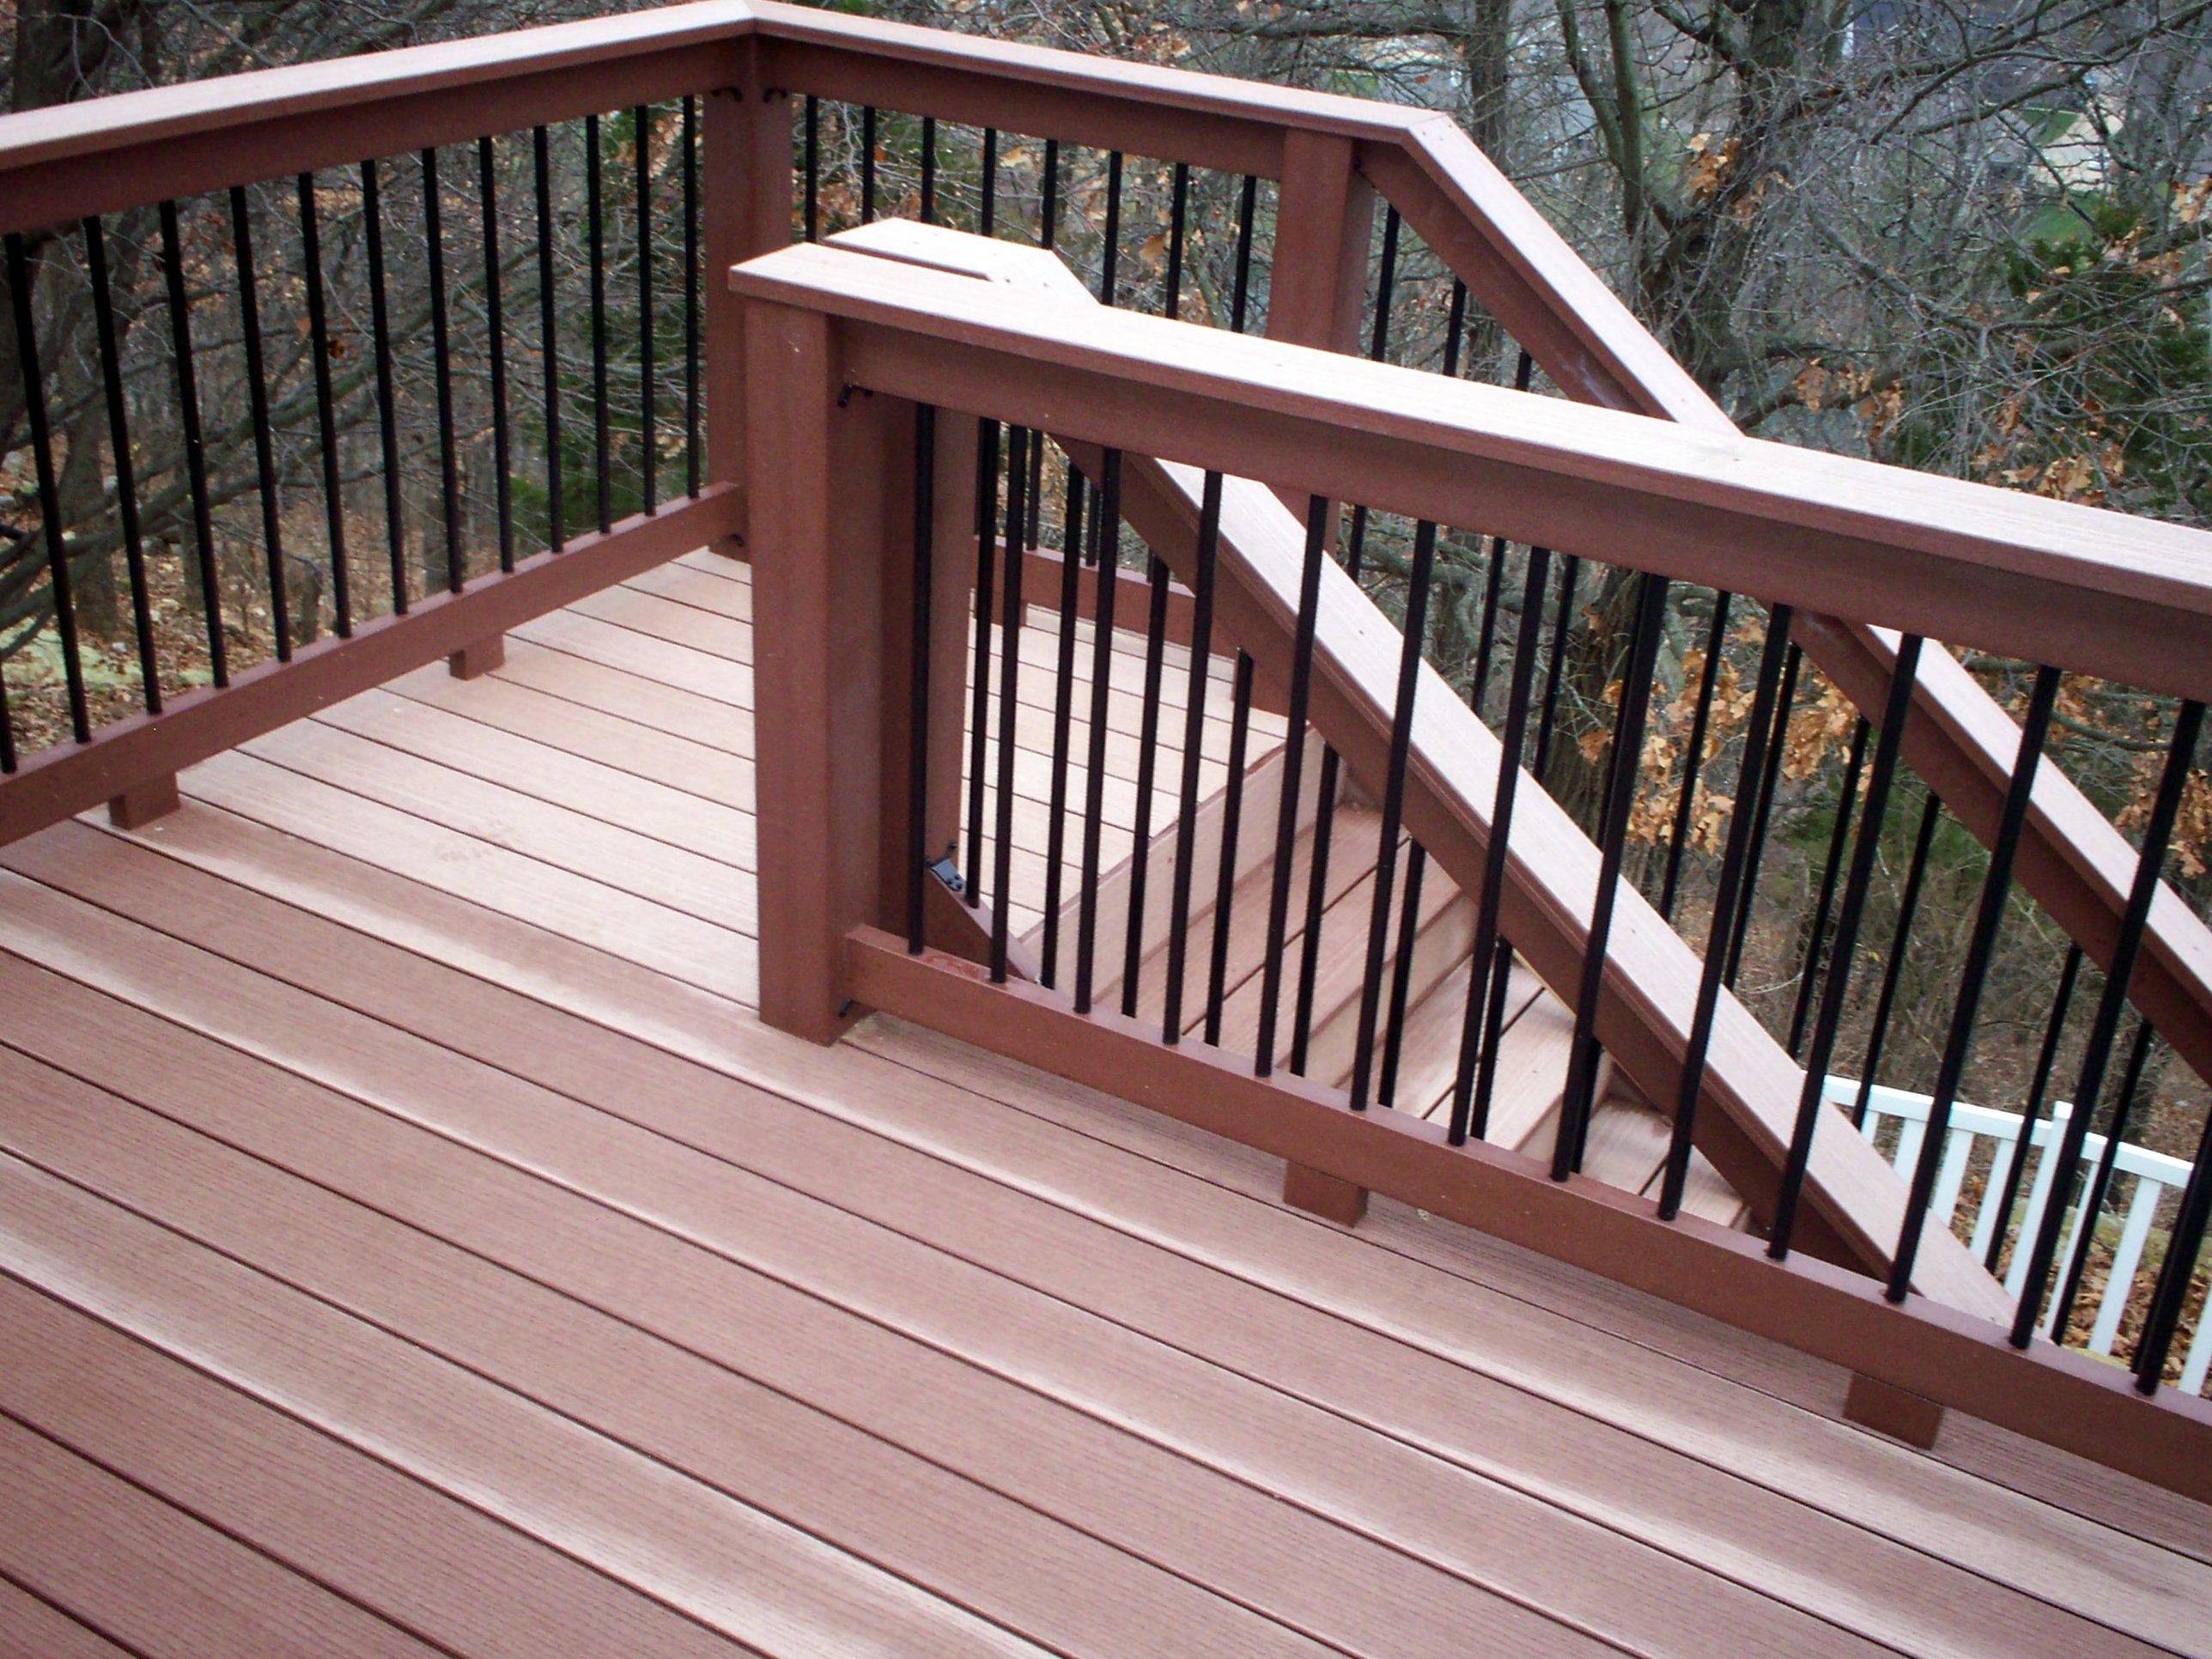 St louis mo trends for outdoor living in 2013 st Composite flooring for decks